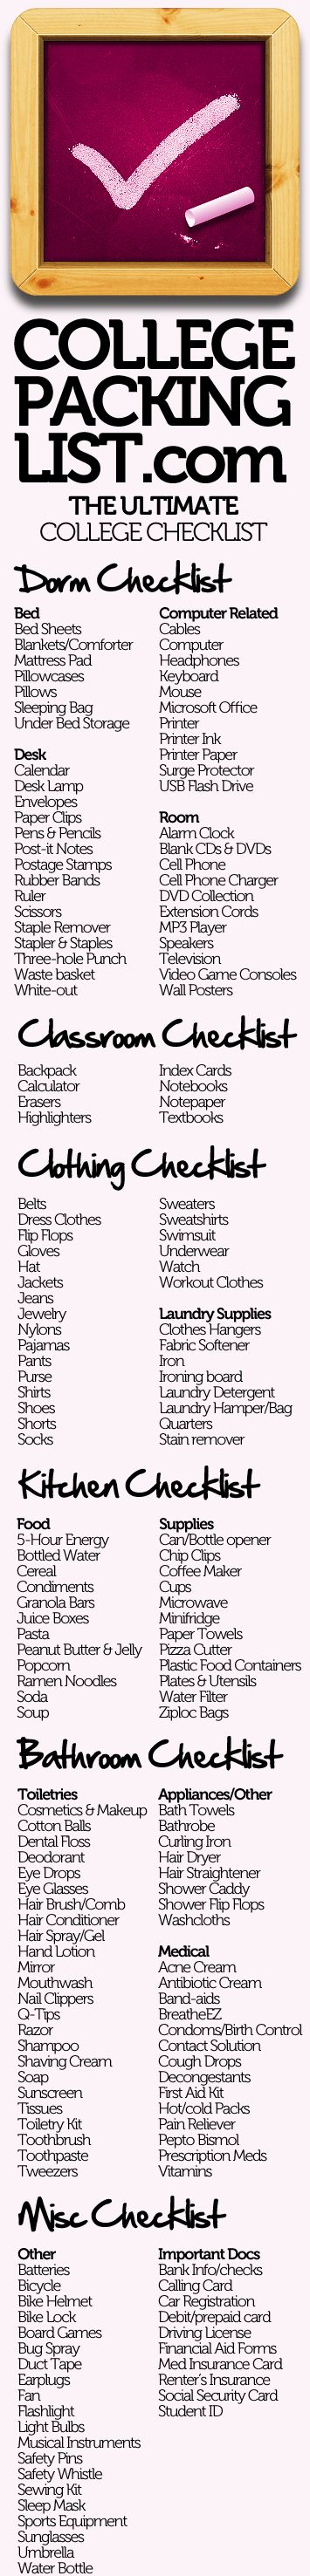 College Packing List!!Colleges Checklist, Colleges Life, Dorm Room, Colleges Pack Lists, Check Lists, Colleges Dorm, College Checklist, Dorm Checklist, College Packing Lists